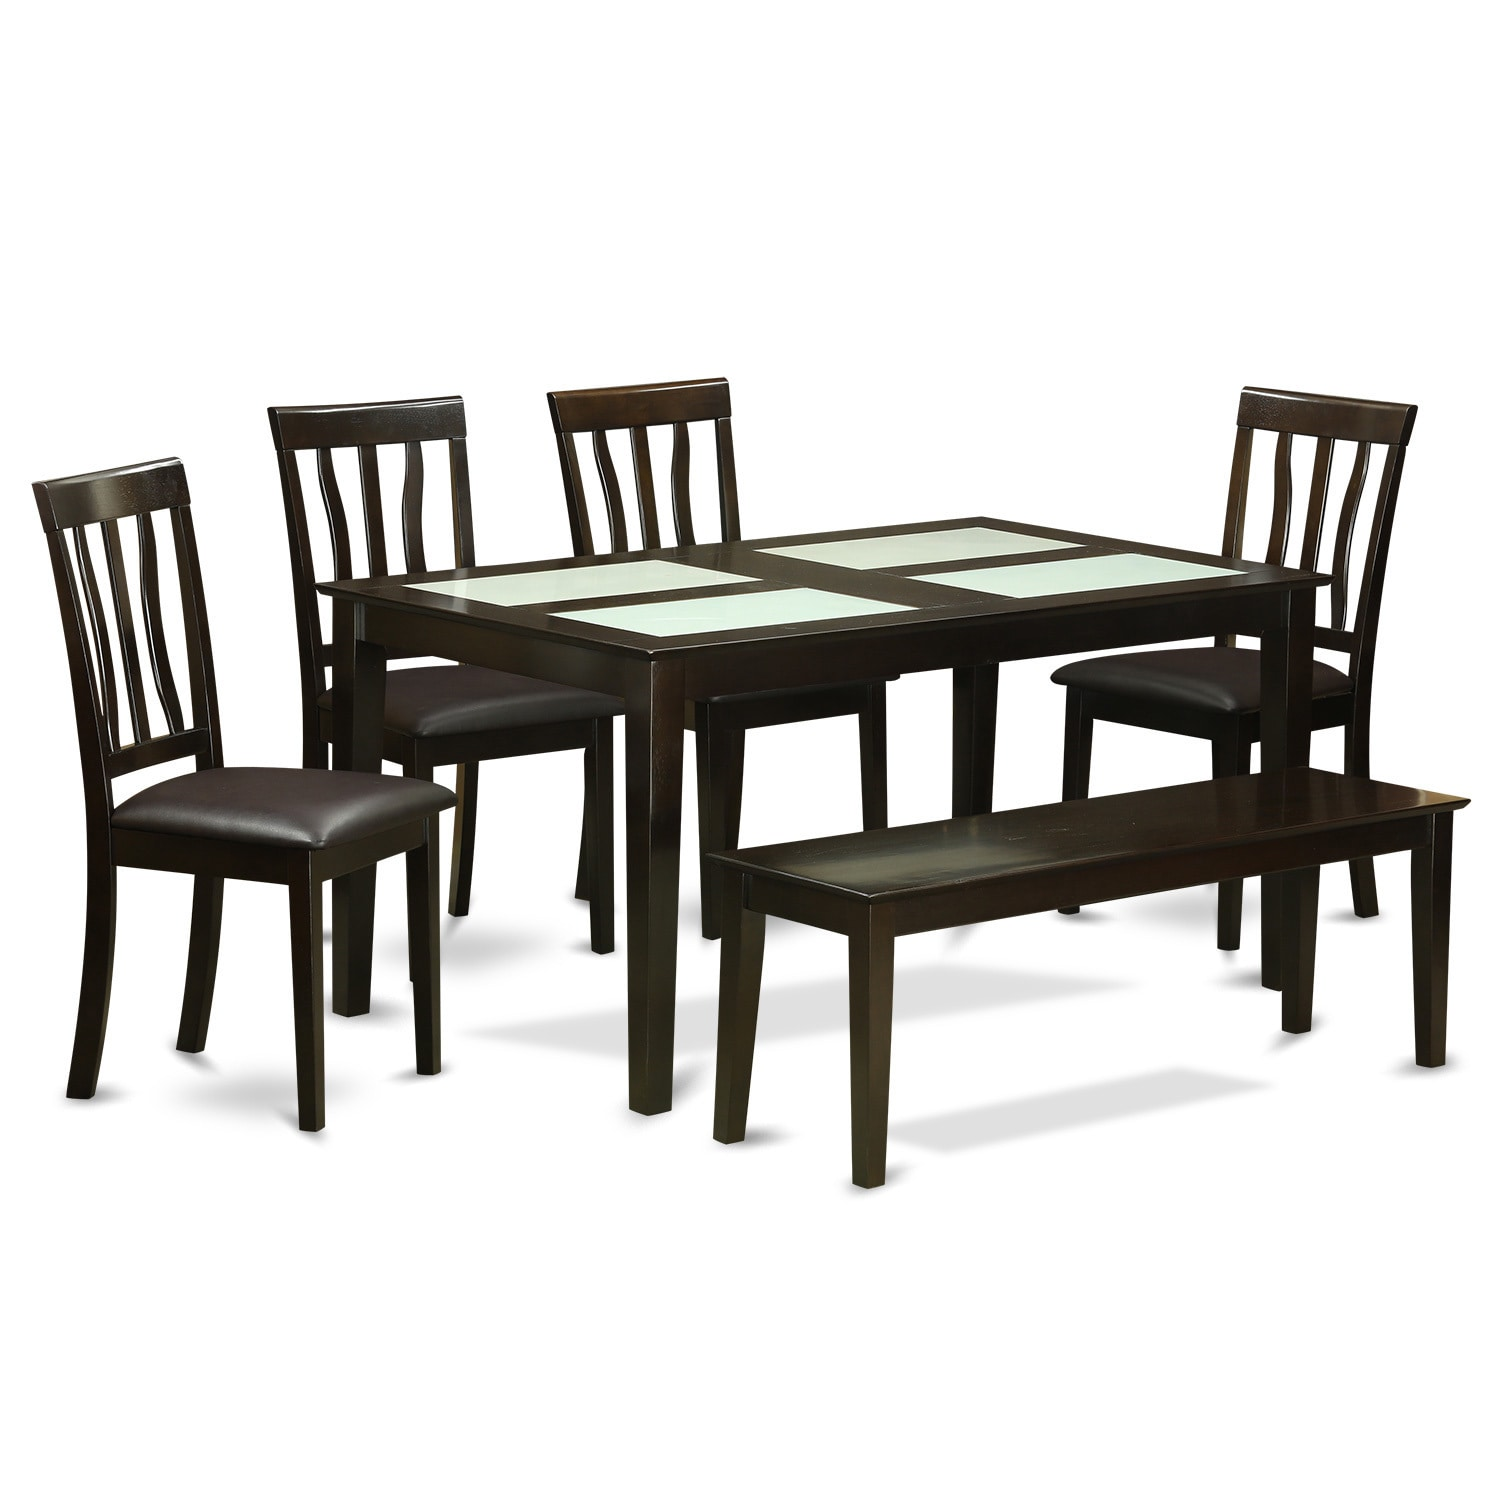 Cappucino 6-piece Dining Room Set with Glass Top Dining T...